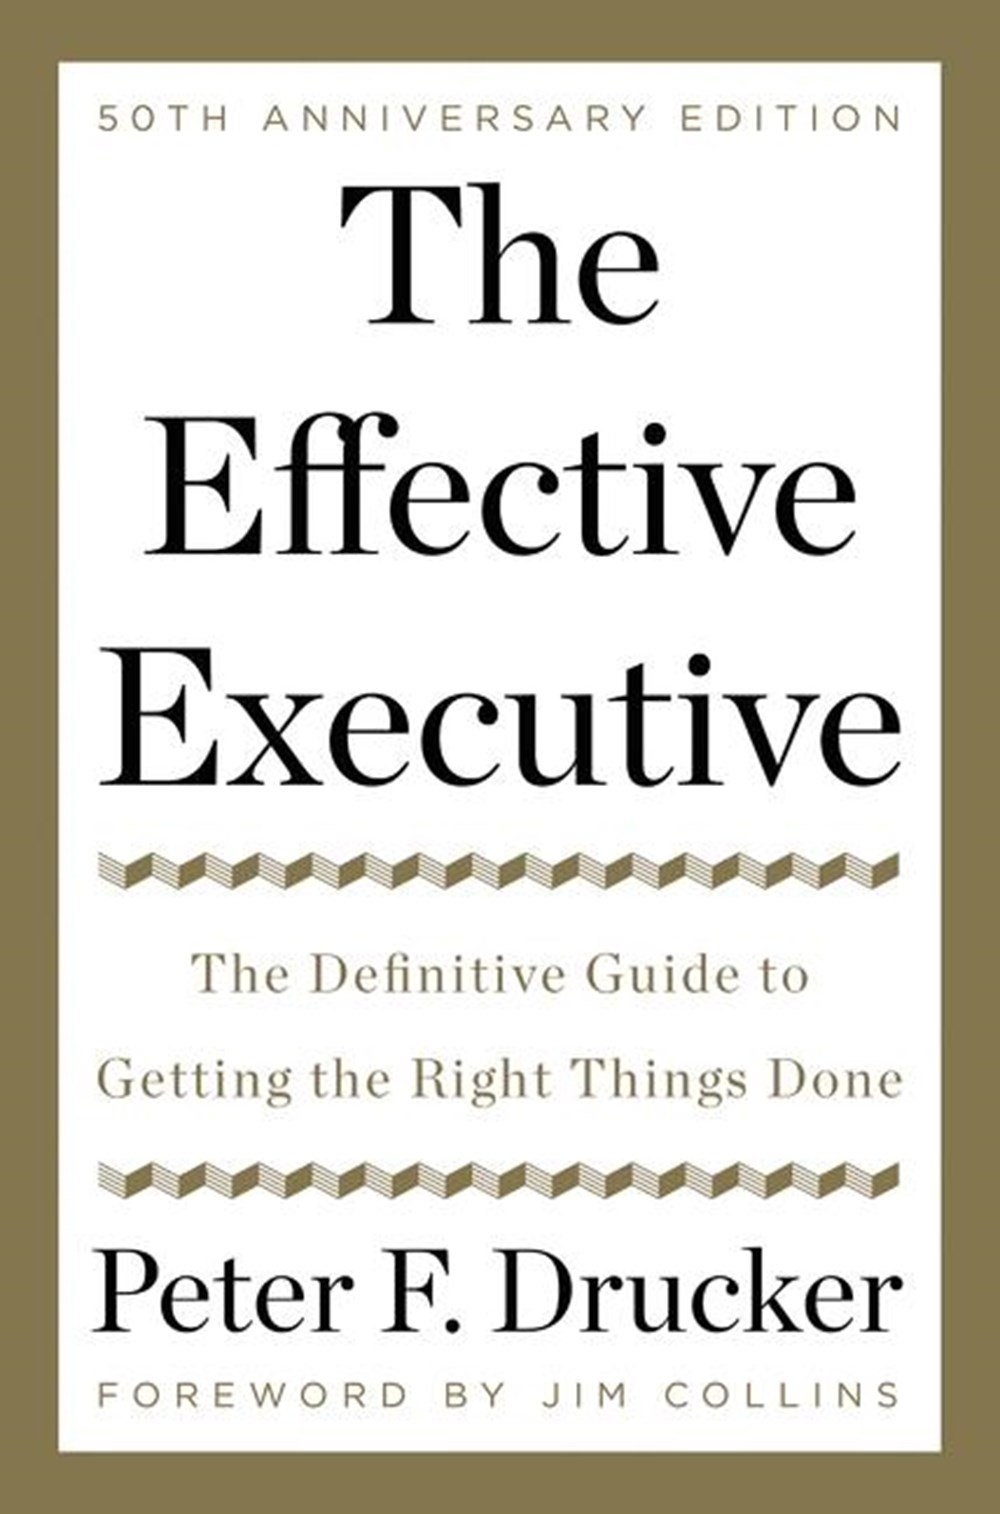 Effective Executive The Definitive Guide to Getting the Right Things Done